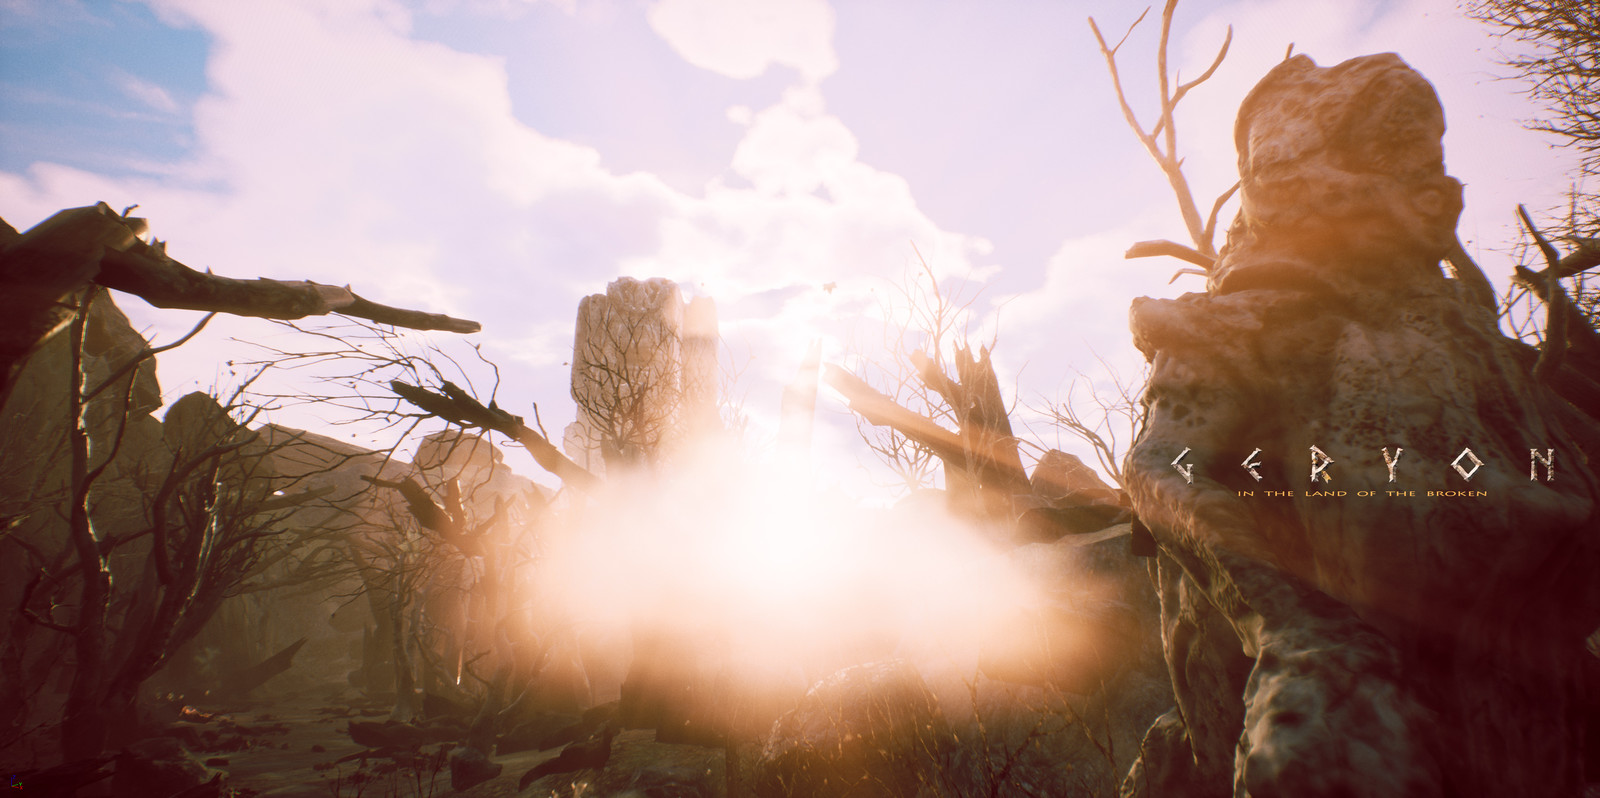 Geryon: In the Land of the Broken- PC UE4 Game Project- WIP